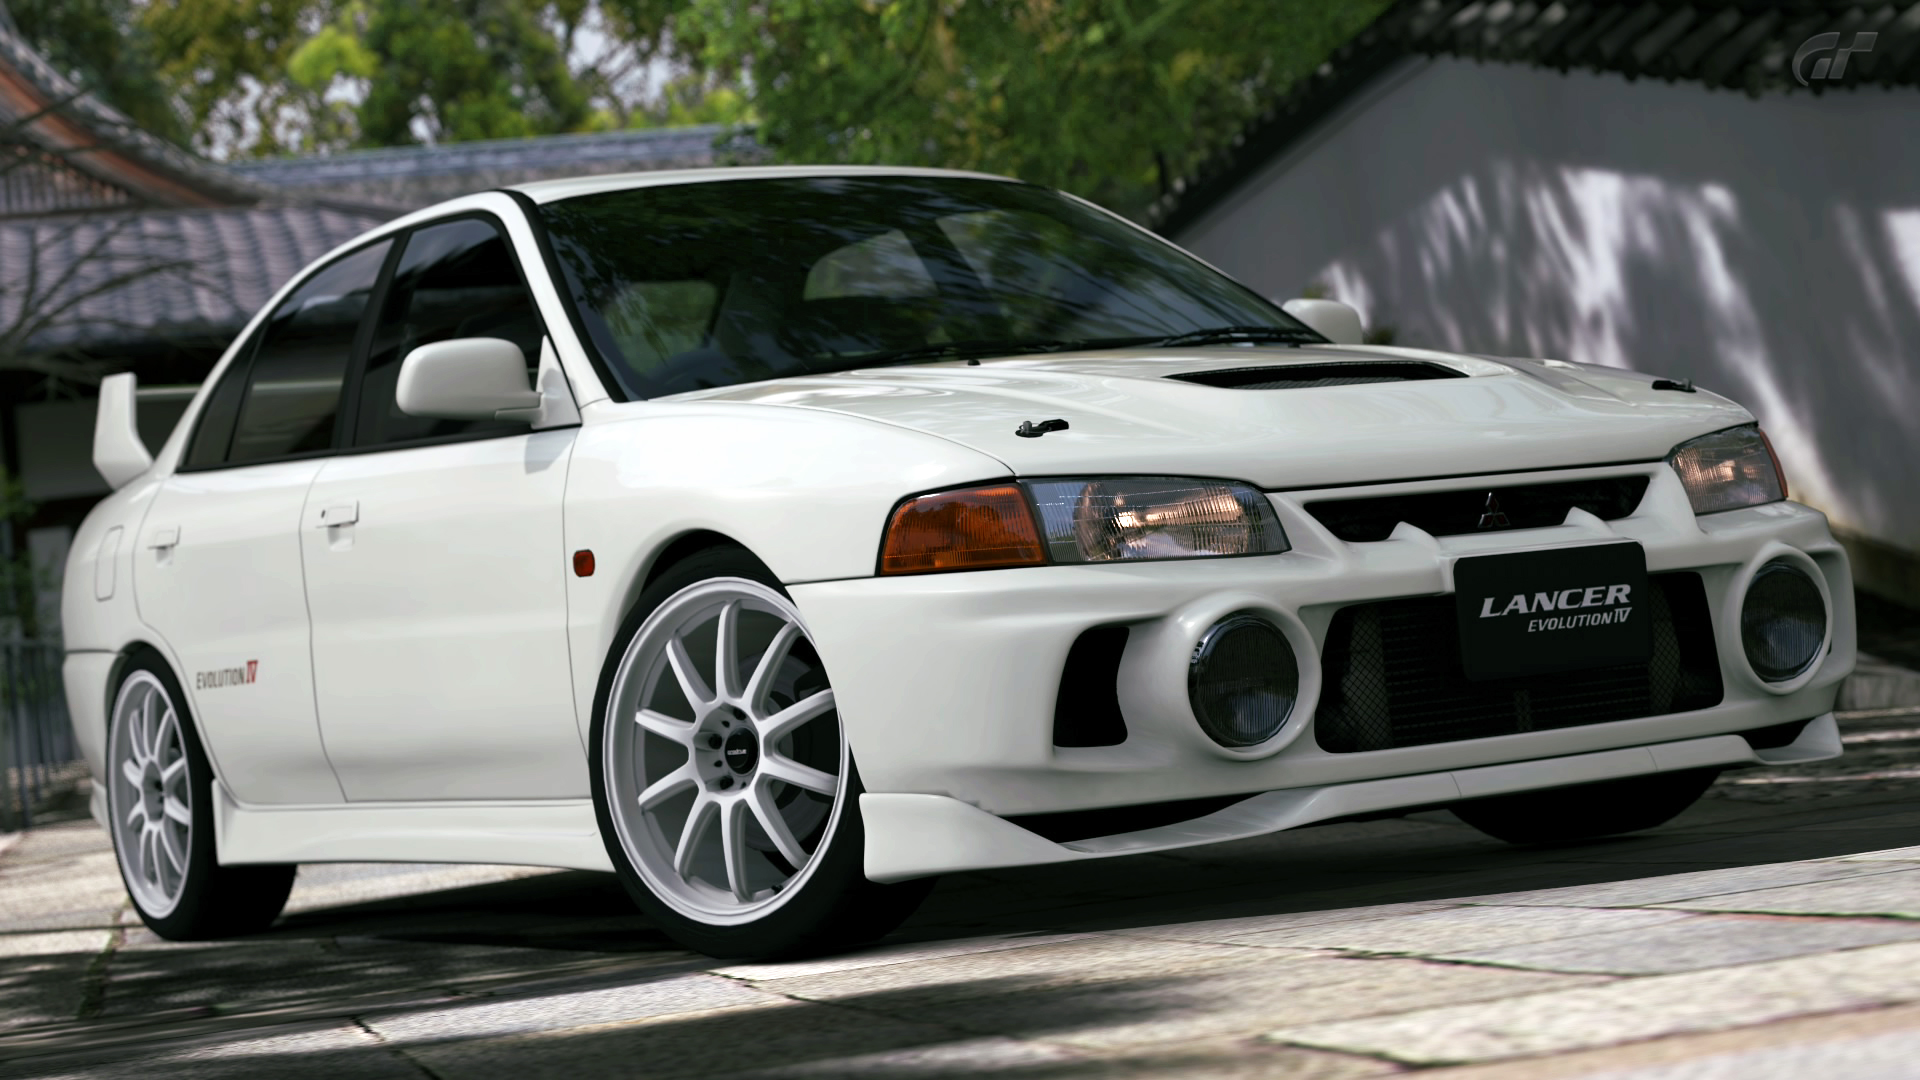 Wallpaper Mitsubishi Lancer Evolution